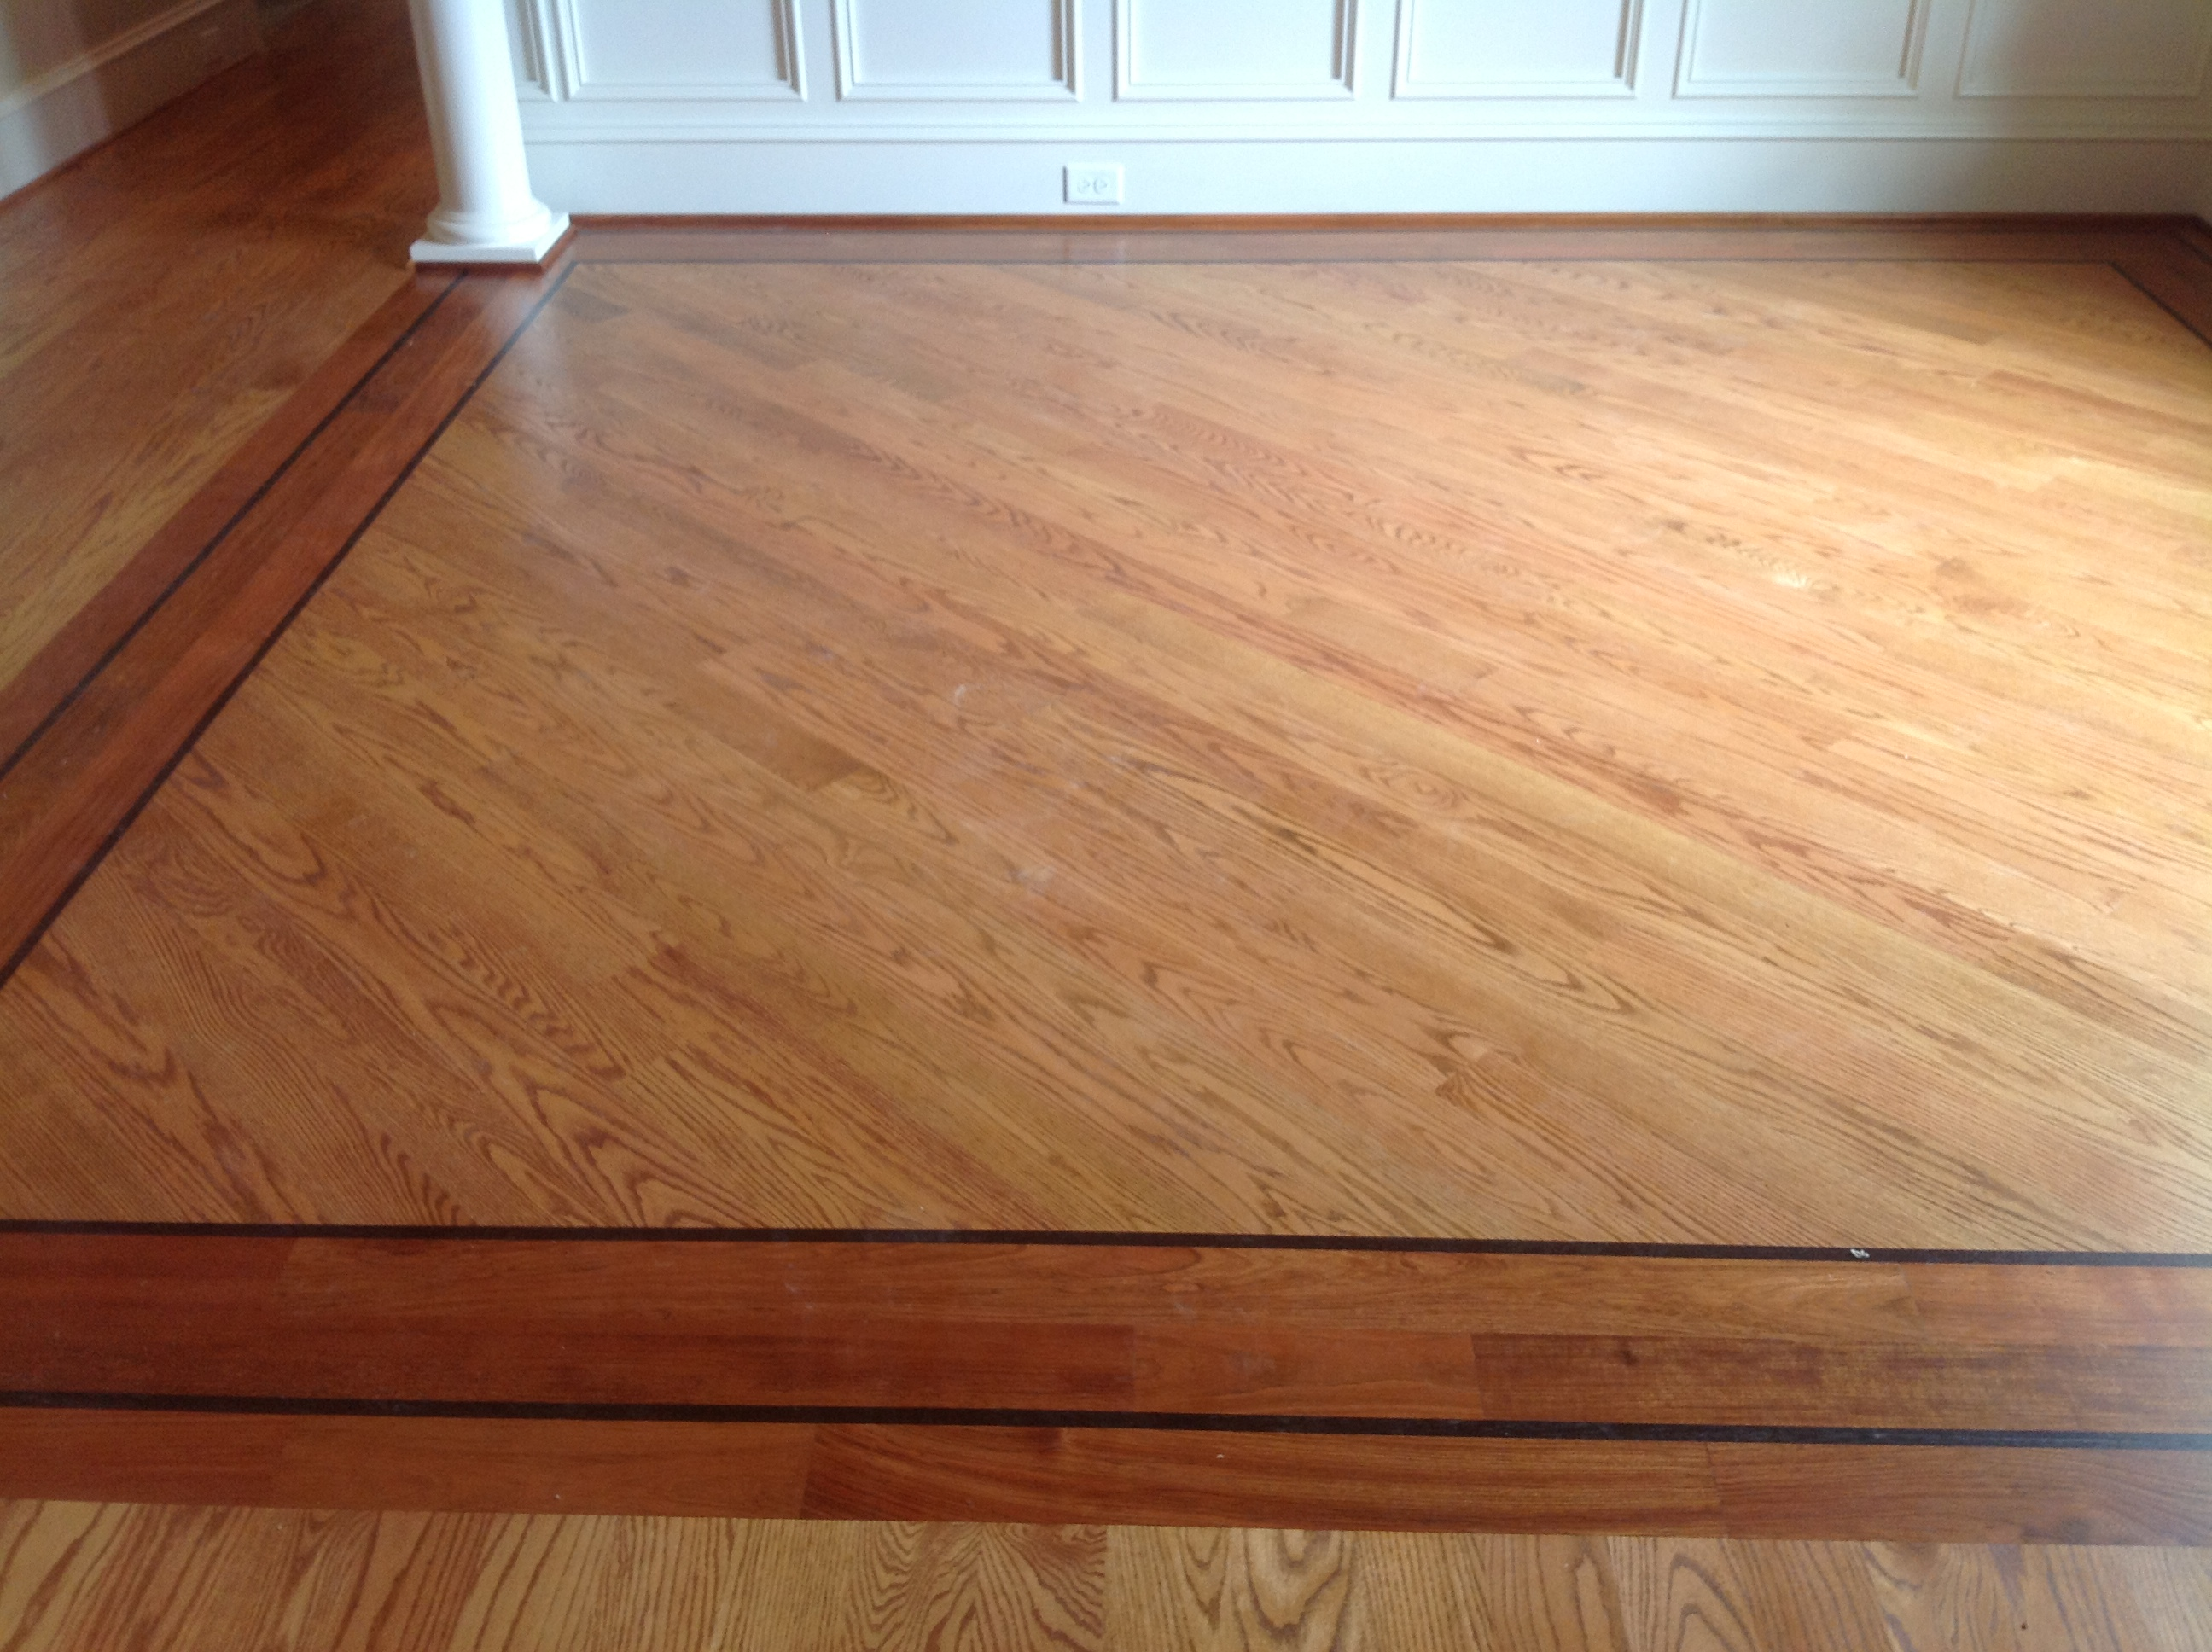 New Our Hardwood Flooring Photo Gallery Of Our Customer 39 S